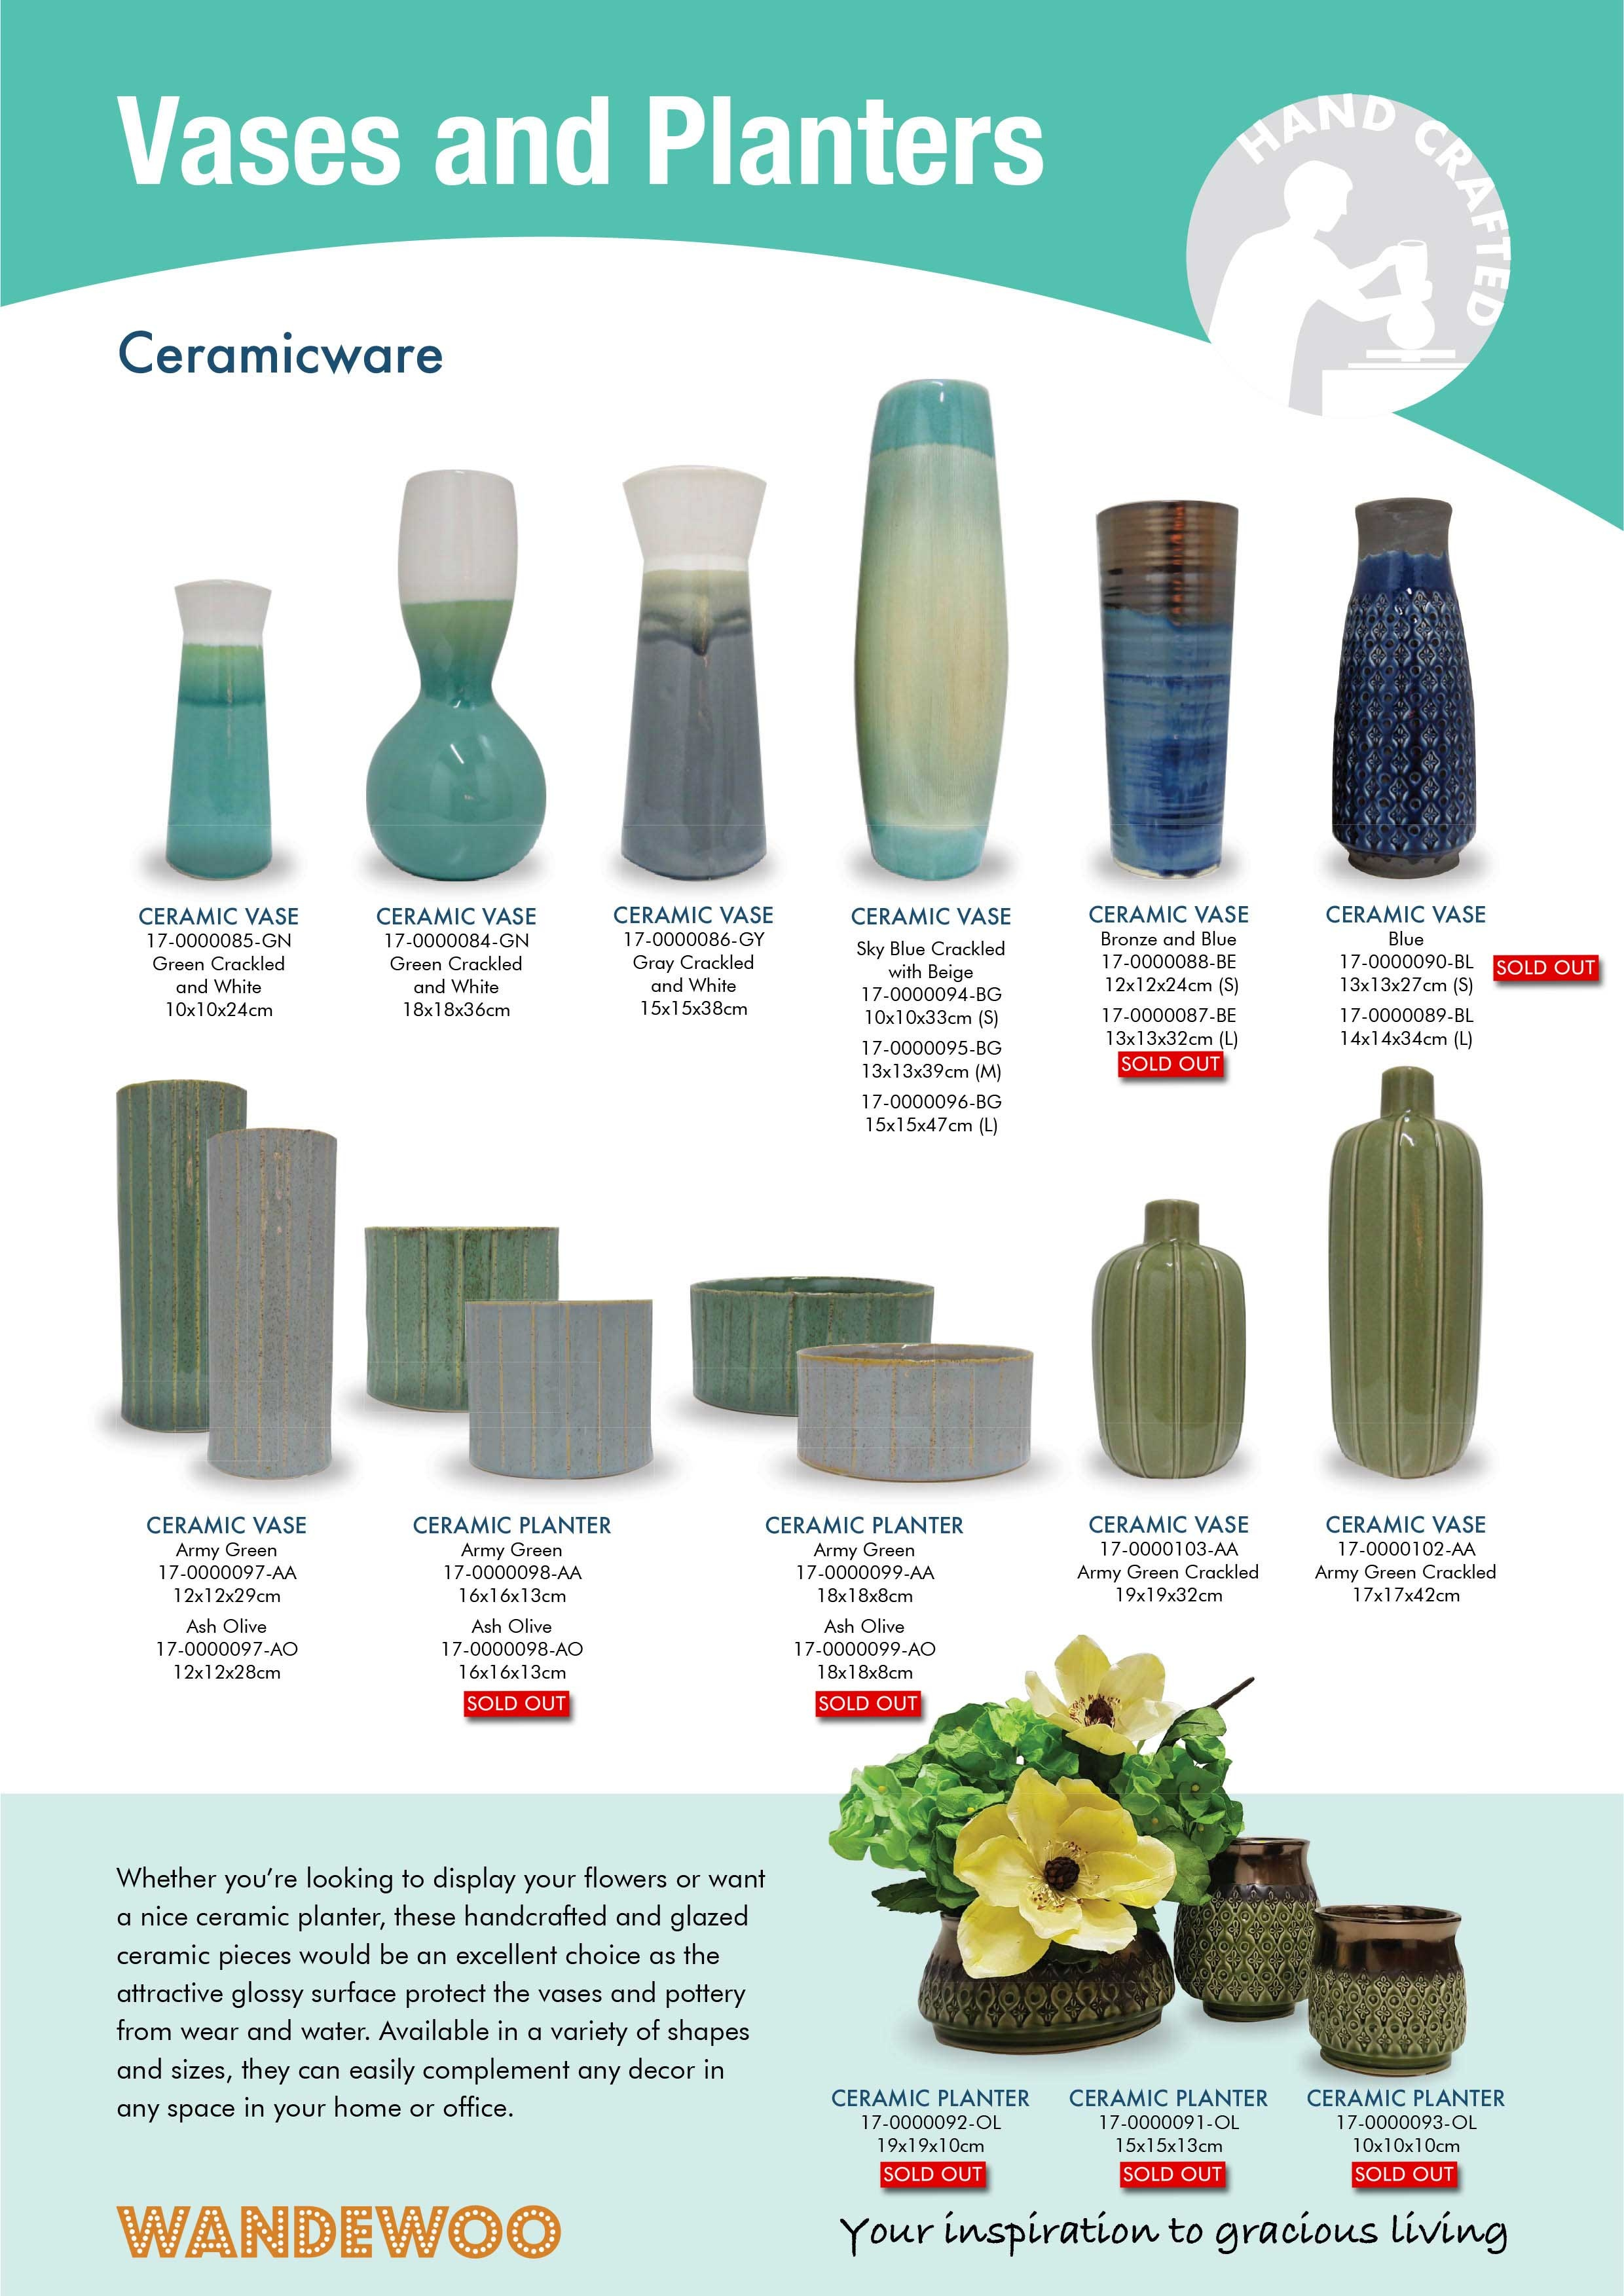 Home Décor Accessories - Ceramicware Vases and Planters